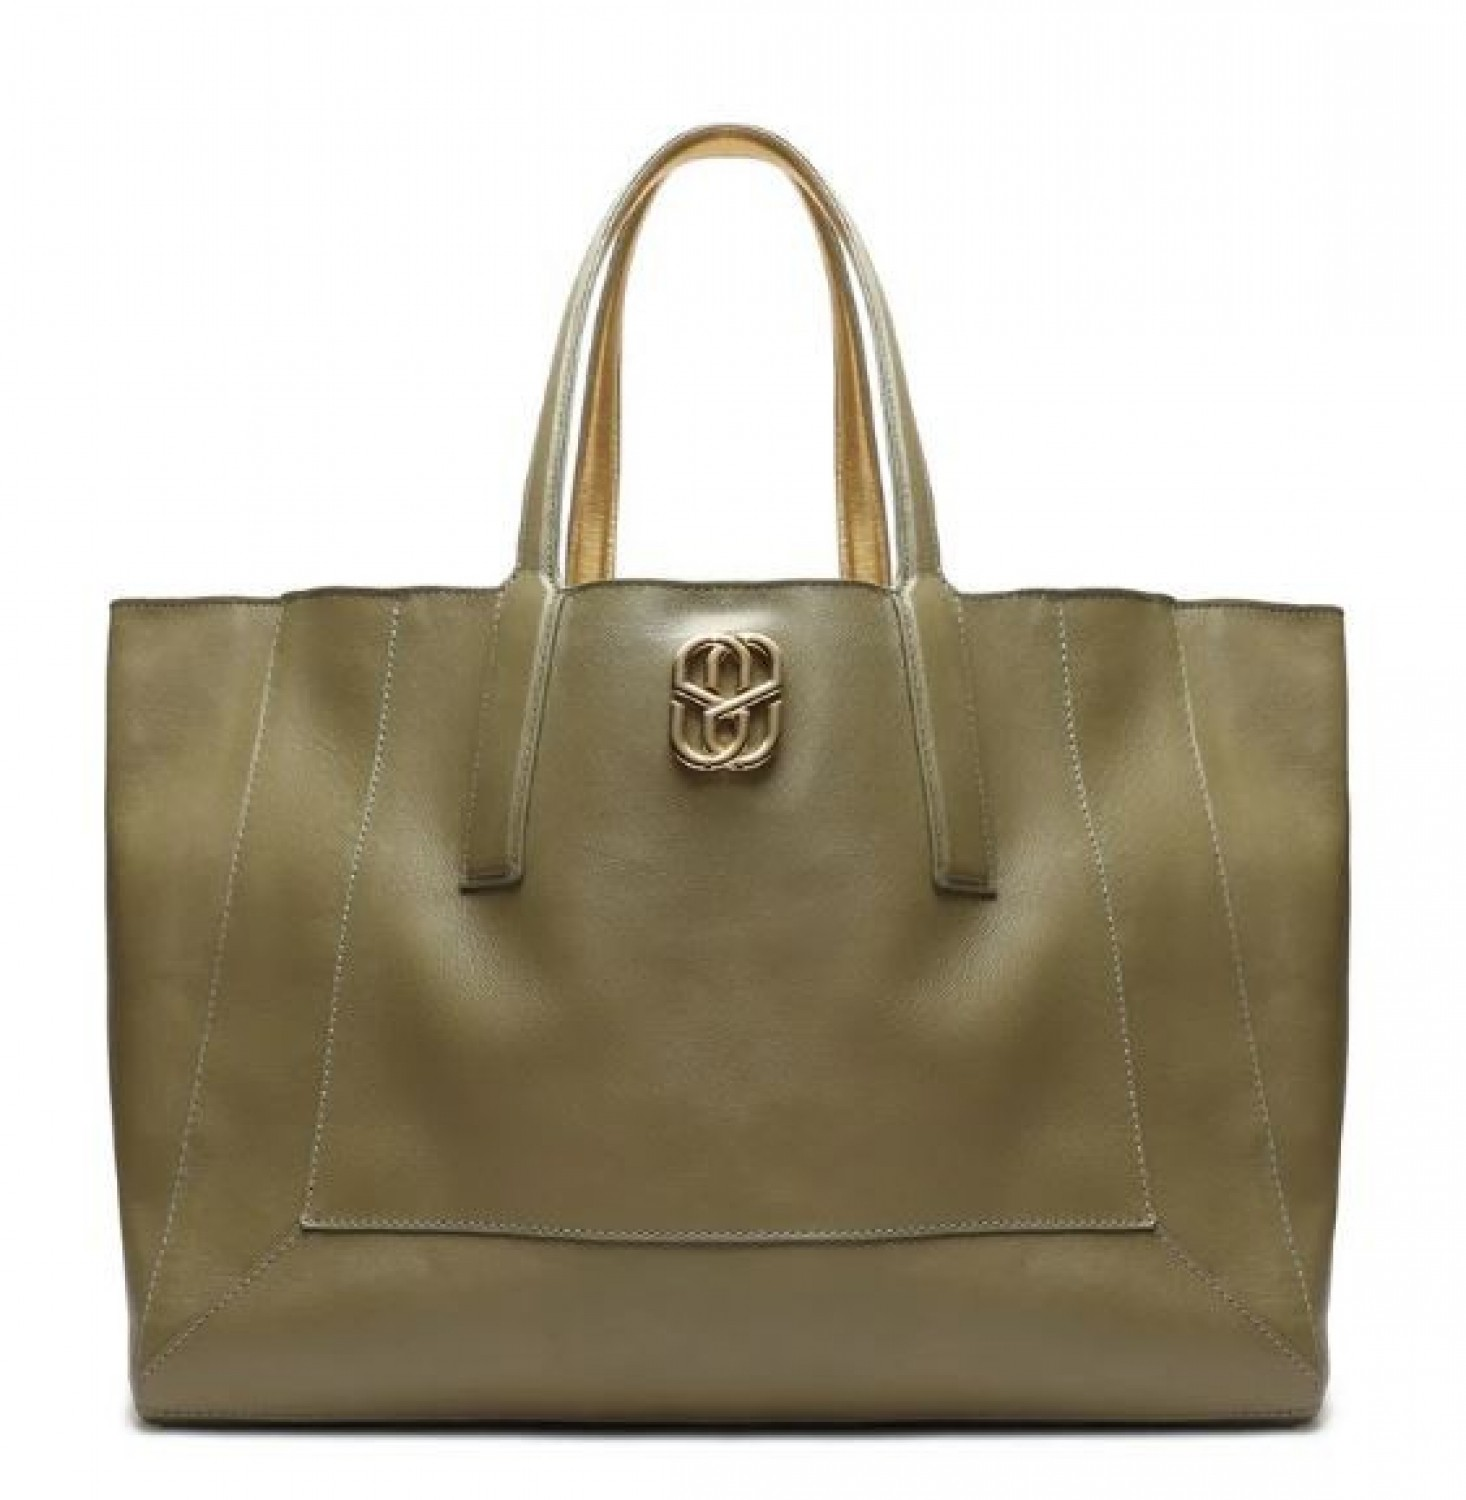 SHOPPING BAG SCHUTZ DOUBLE FACE VERDE